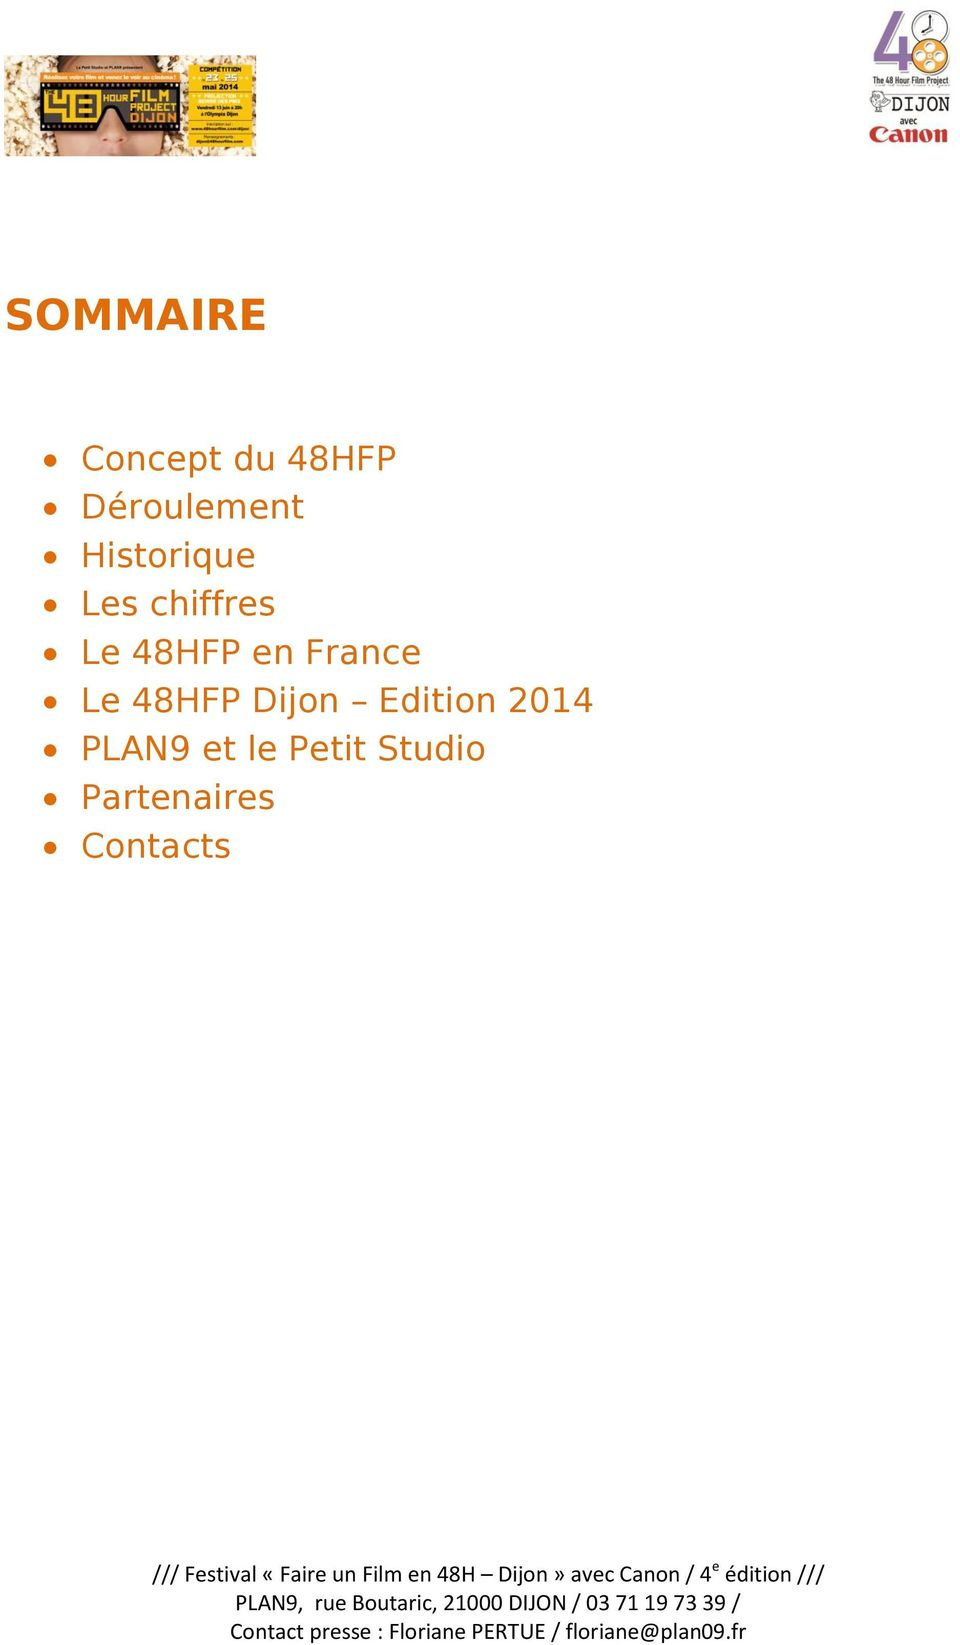 France Le 48HFP Dijon Edition 2014